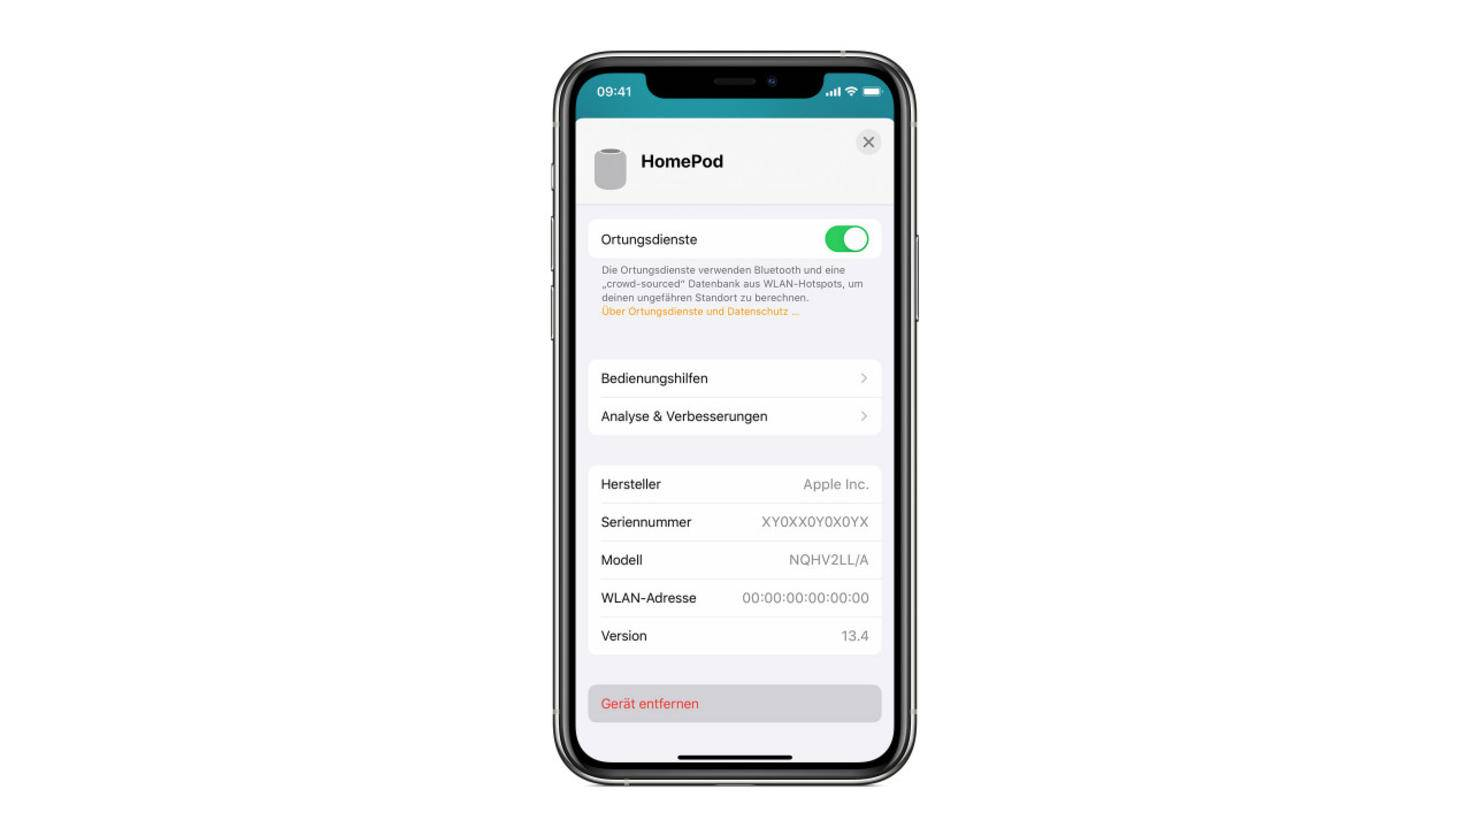 apple-homepod-zurücksetzen-iphone-screenshot